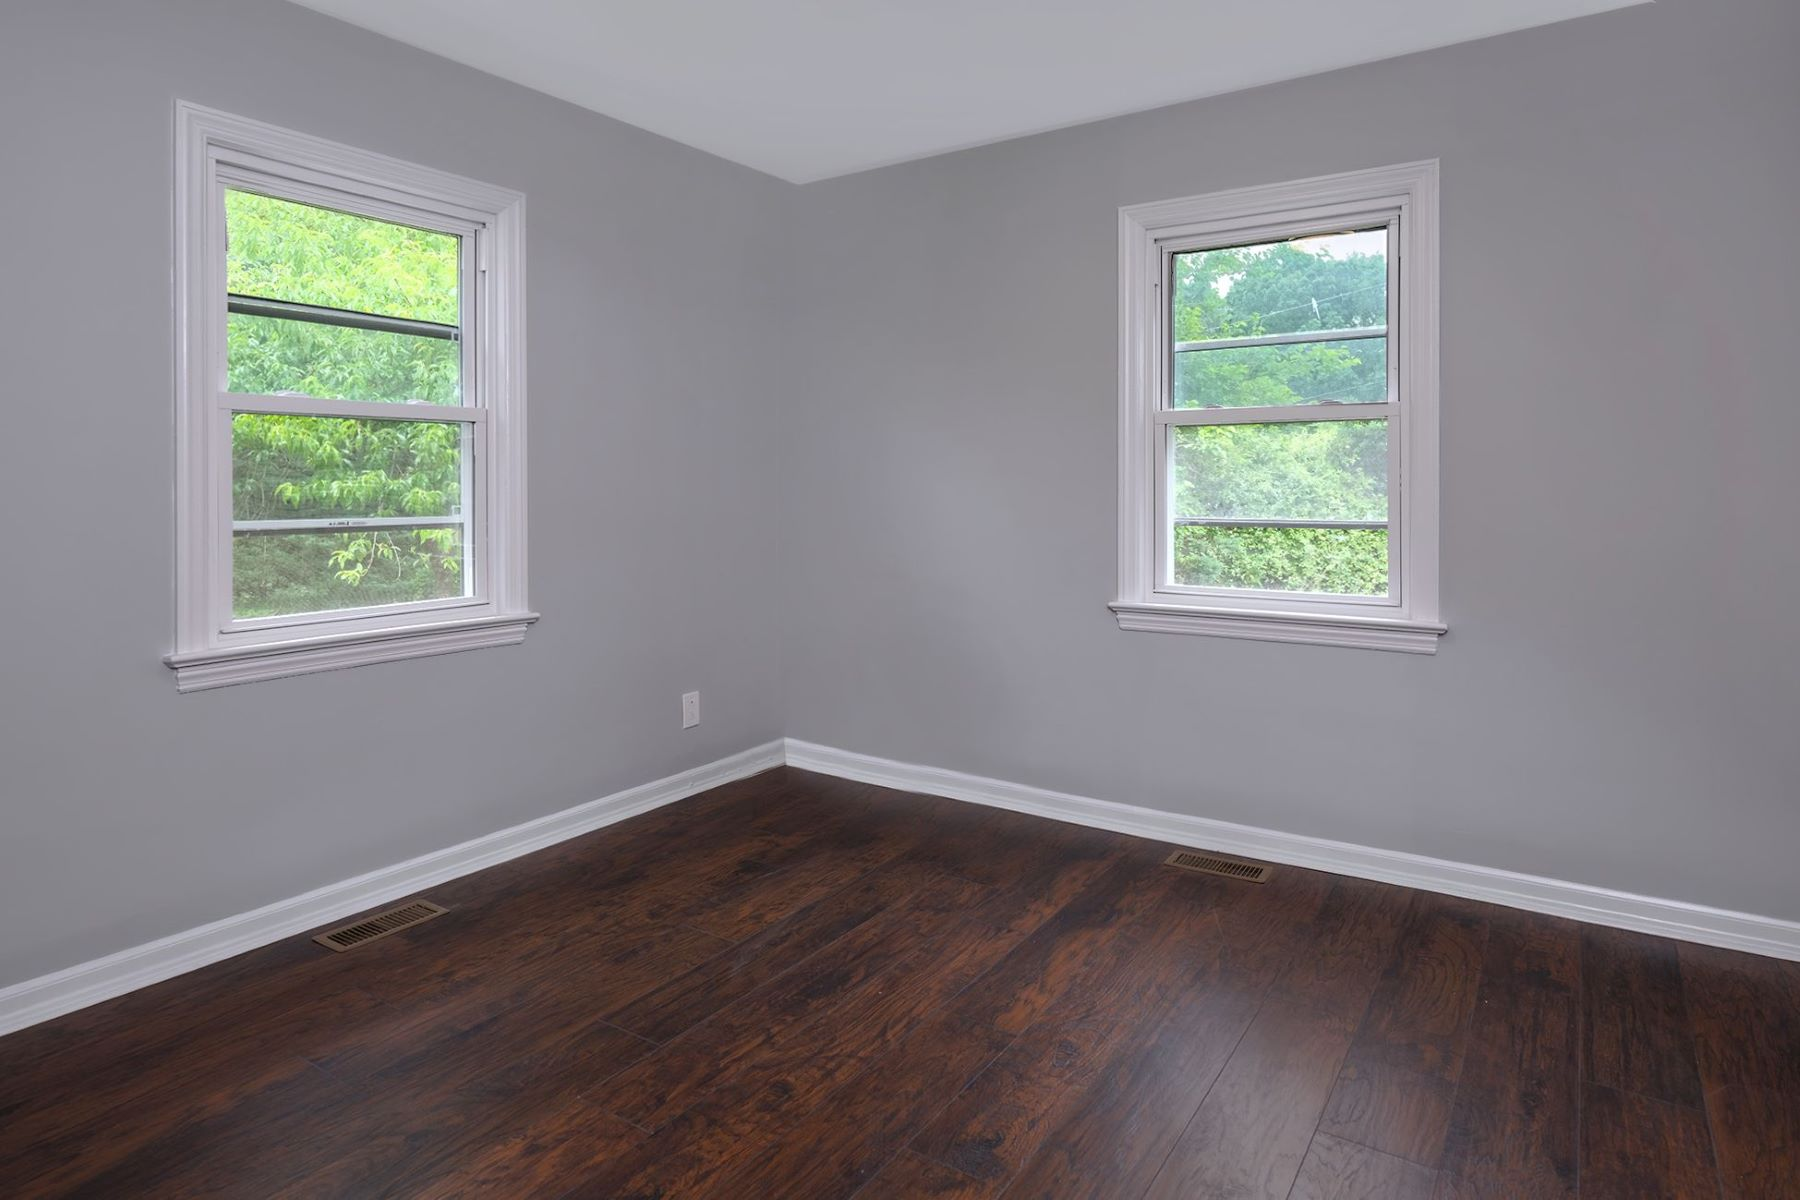 Additional photo for property listing at Beautifully Redone Cape, 5 Minutes from Train 119 Rabbit Hill Road, West Windsor, New Jersey 08550 United States